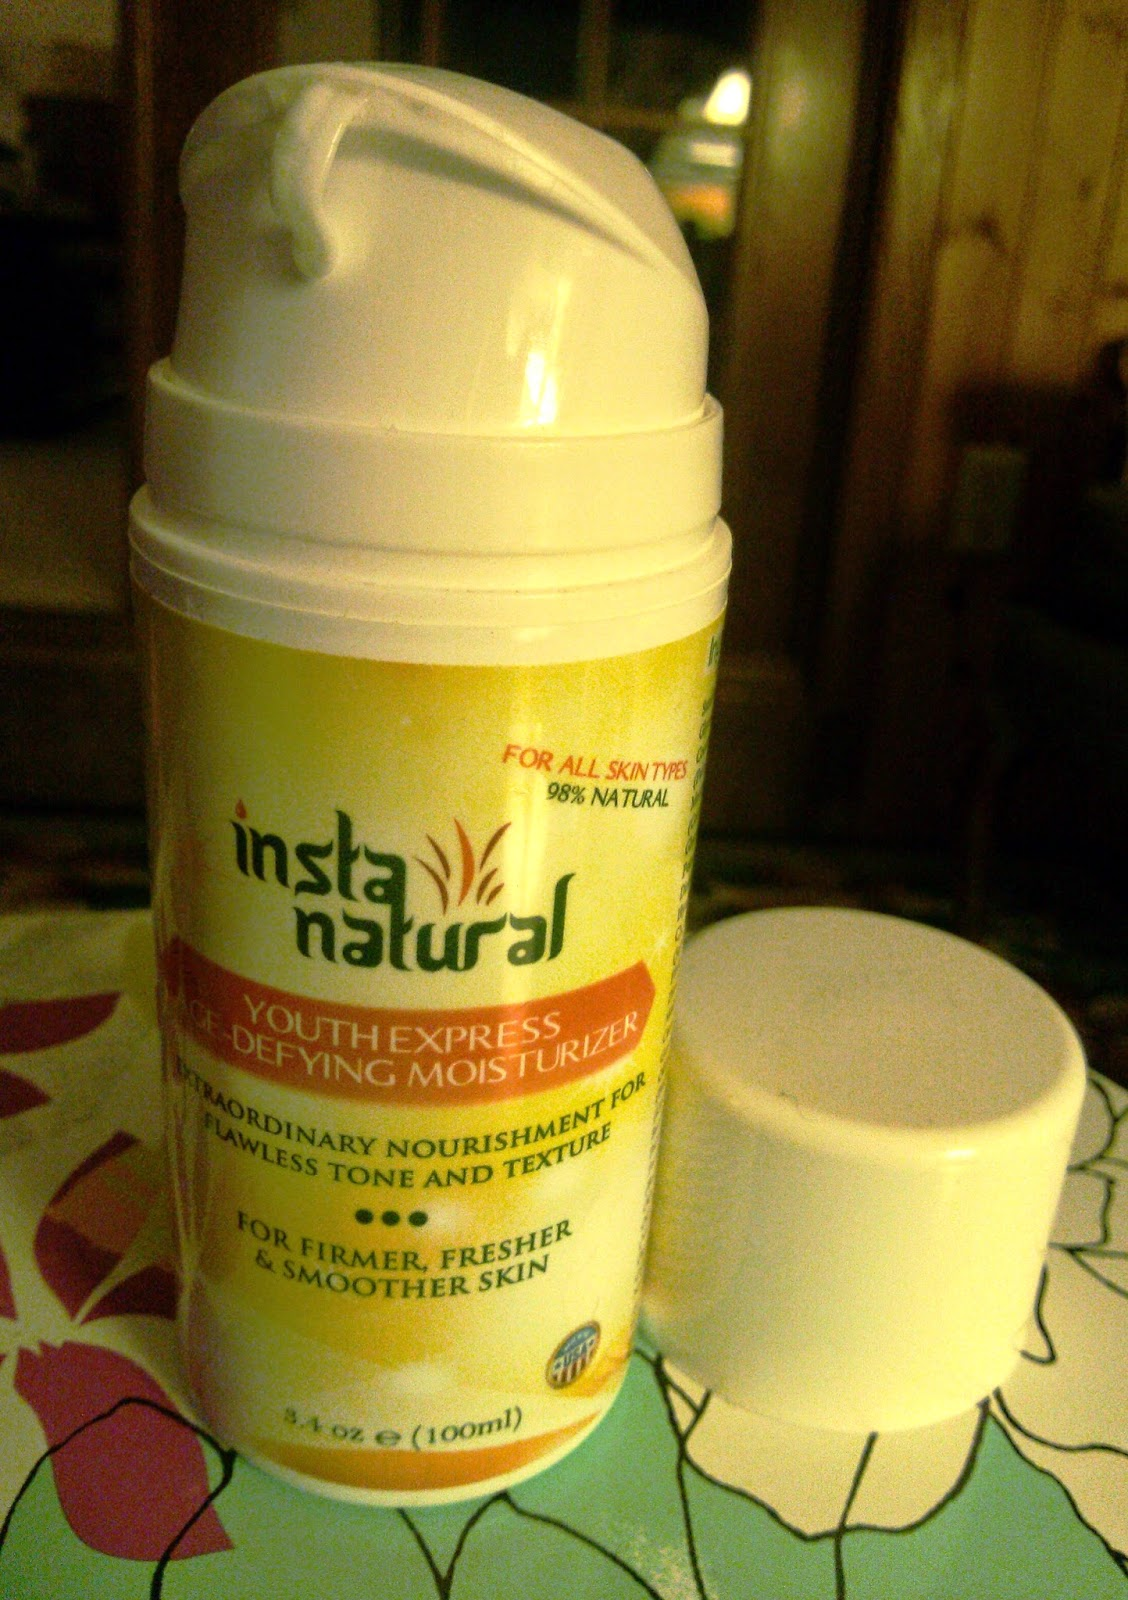 InstaNatural Youth Express Age-Defying Moisturizer Review